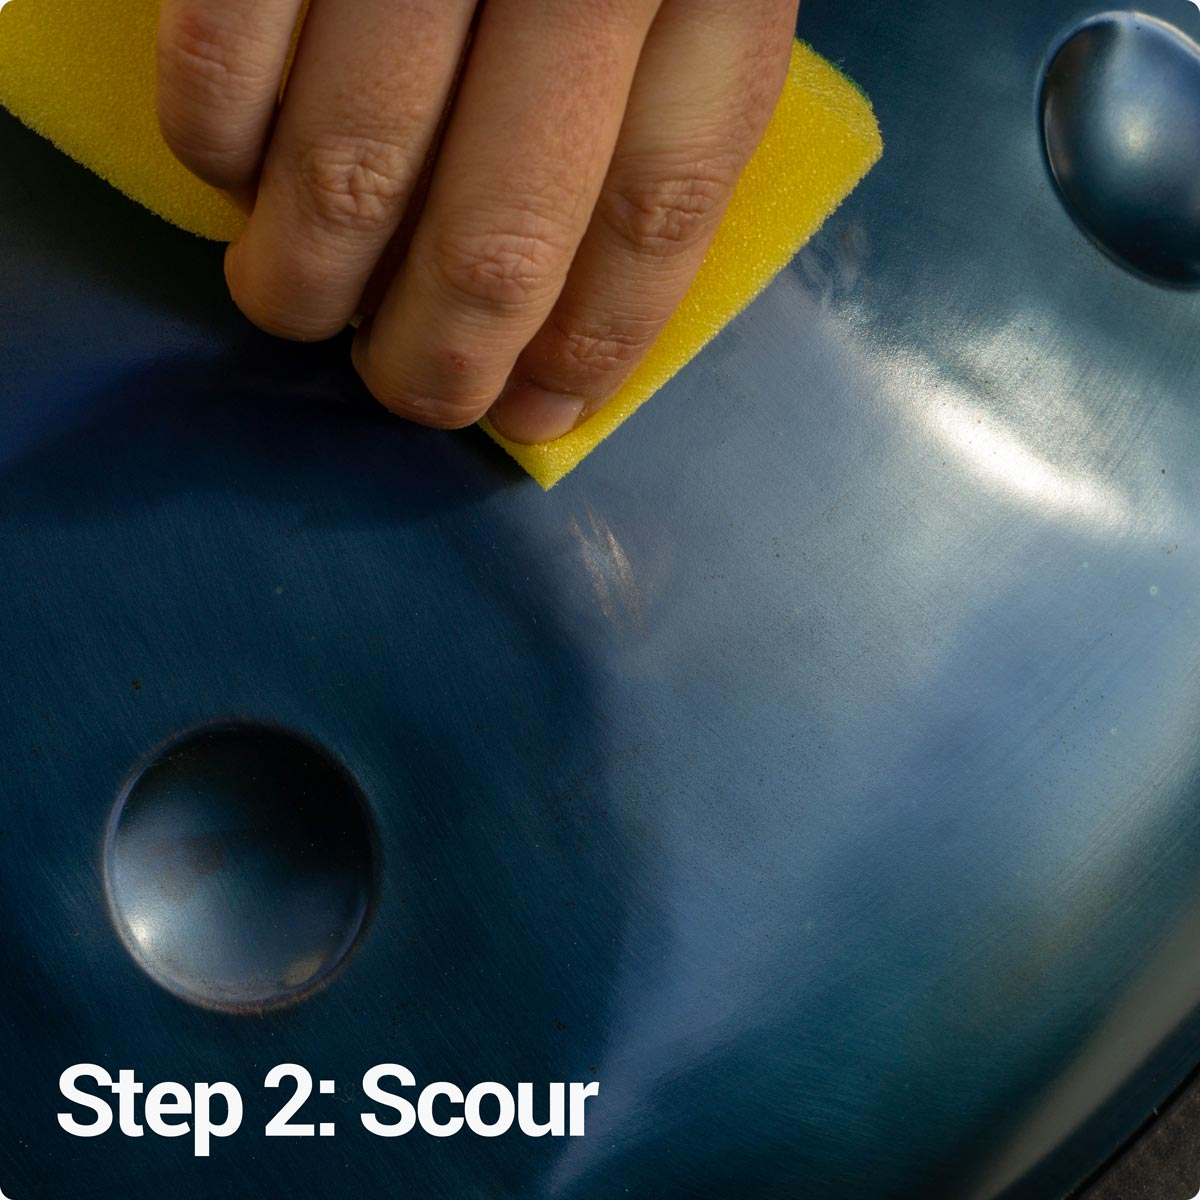 Step 2: Scour your handpan